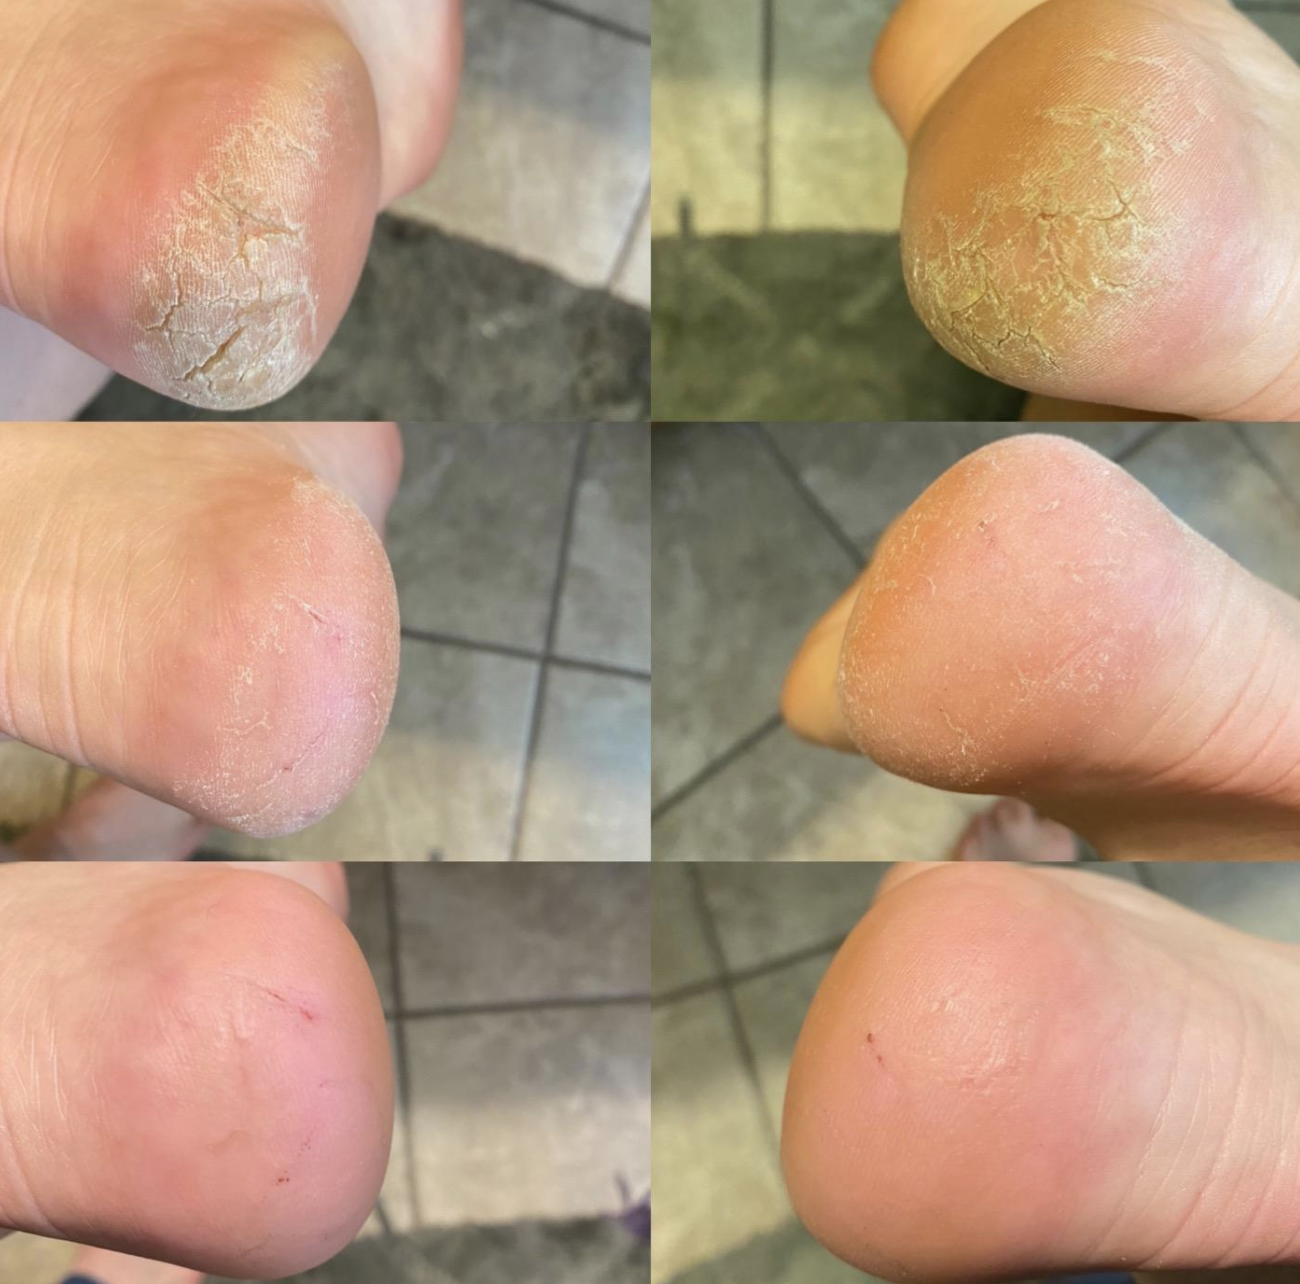 three progression photos from a reviewer showing significantly less dry and cracked heels after using rasp